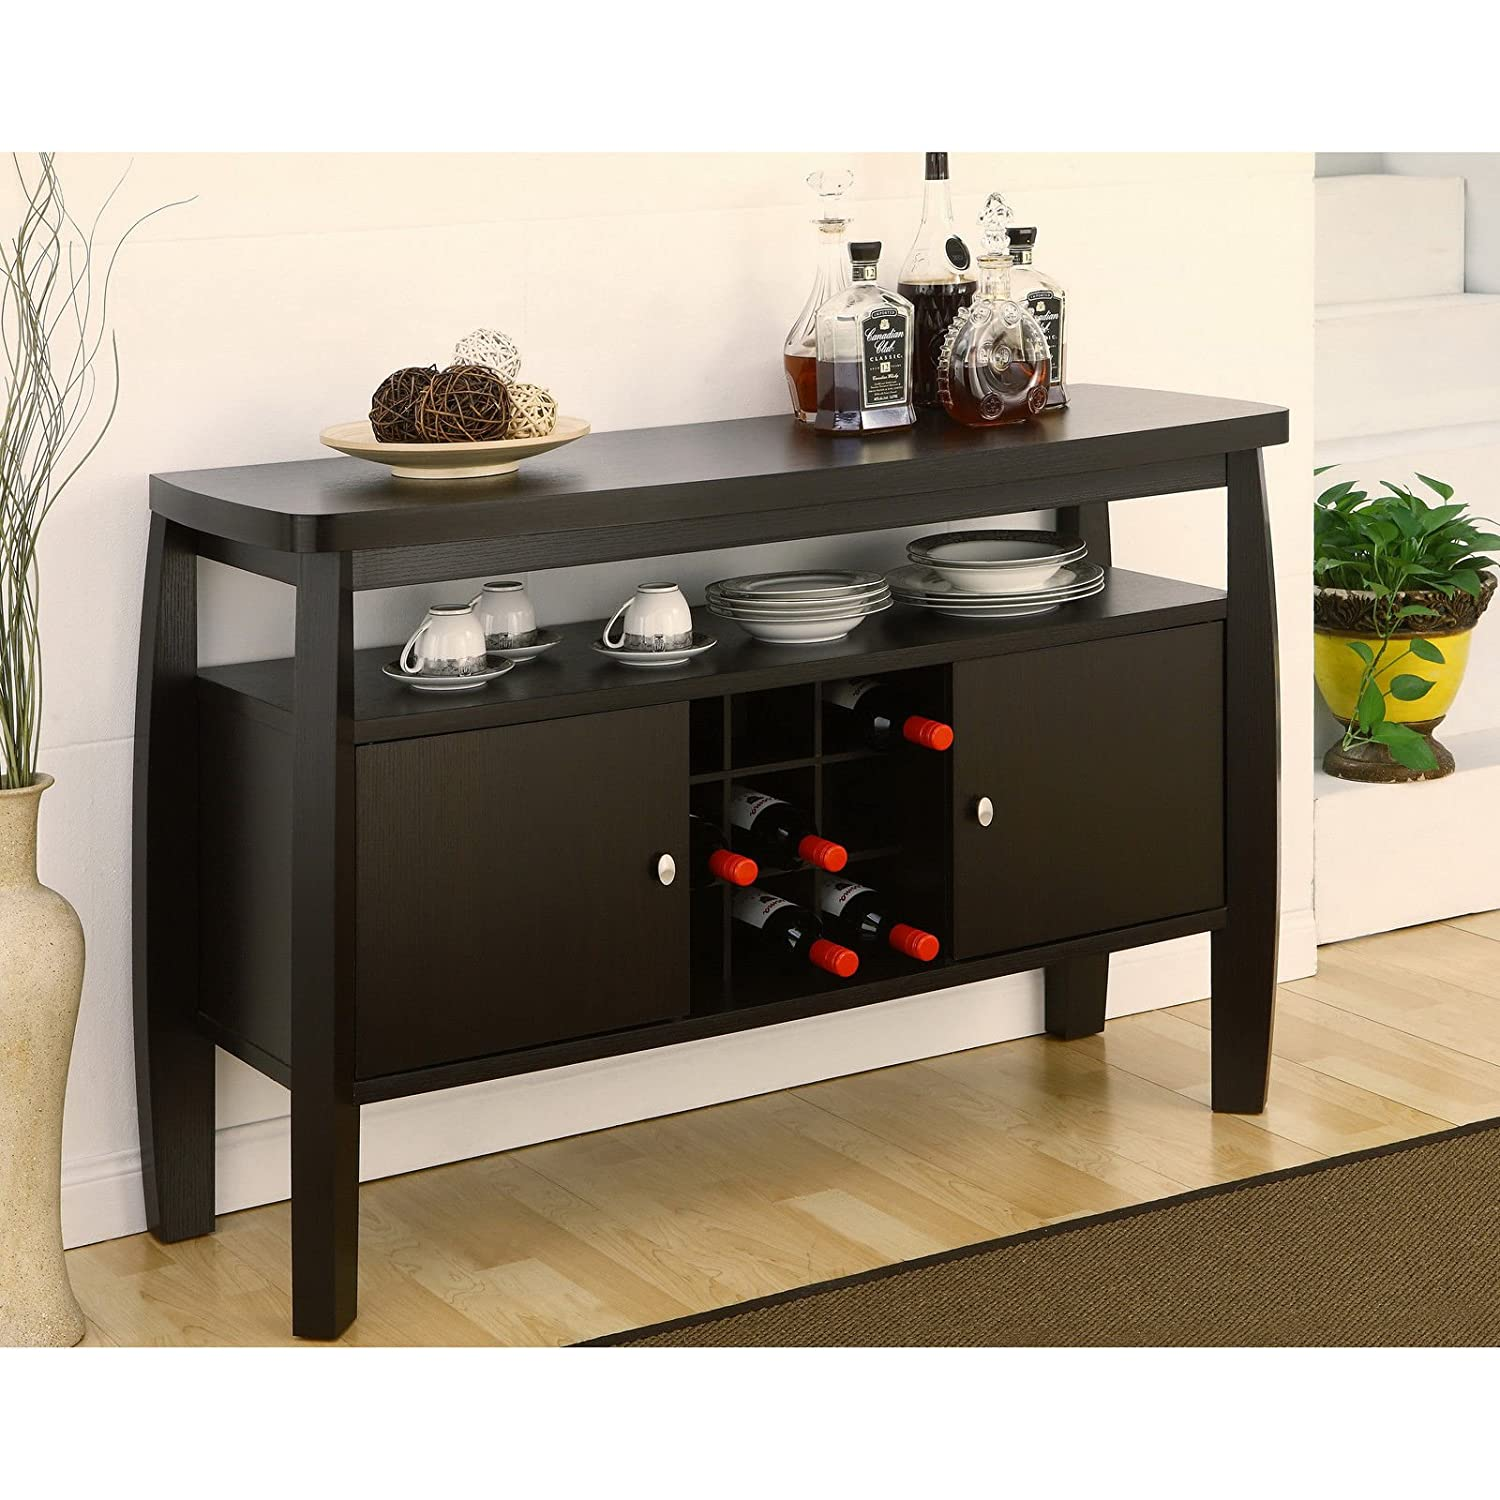 - Amazon.com - Furniture Of America Zarina Dark Espresso Buffet Table -